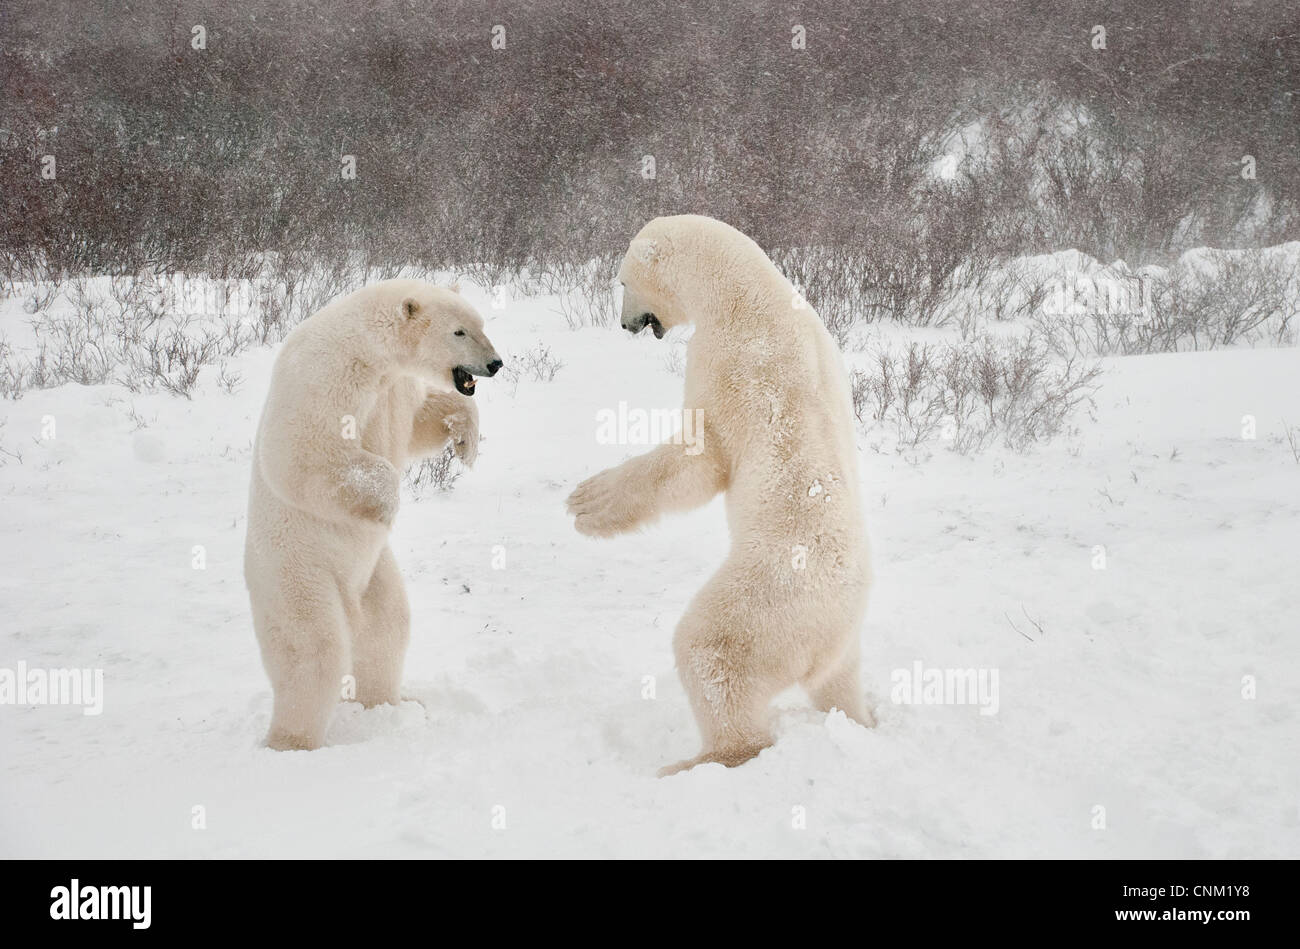 Polar Bears, Ursus maritimus, play fighting, Wapusk National Park, near Hudson Bay, Cape Churchill, Manitoba, Canada Stock Photo